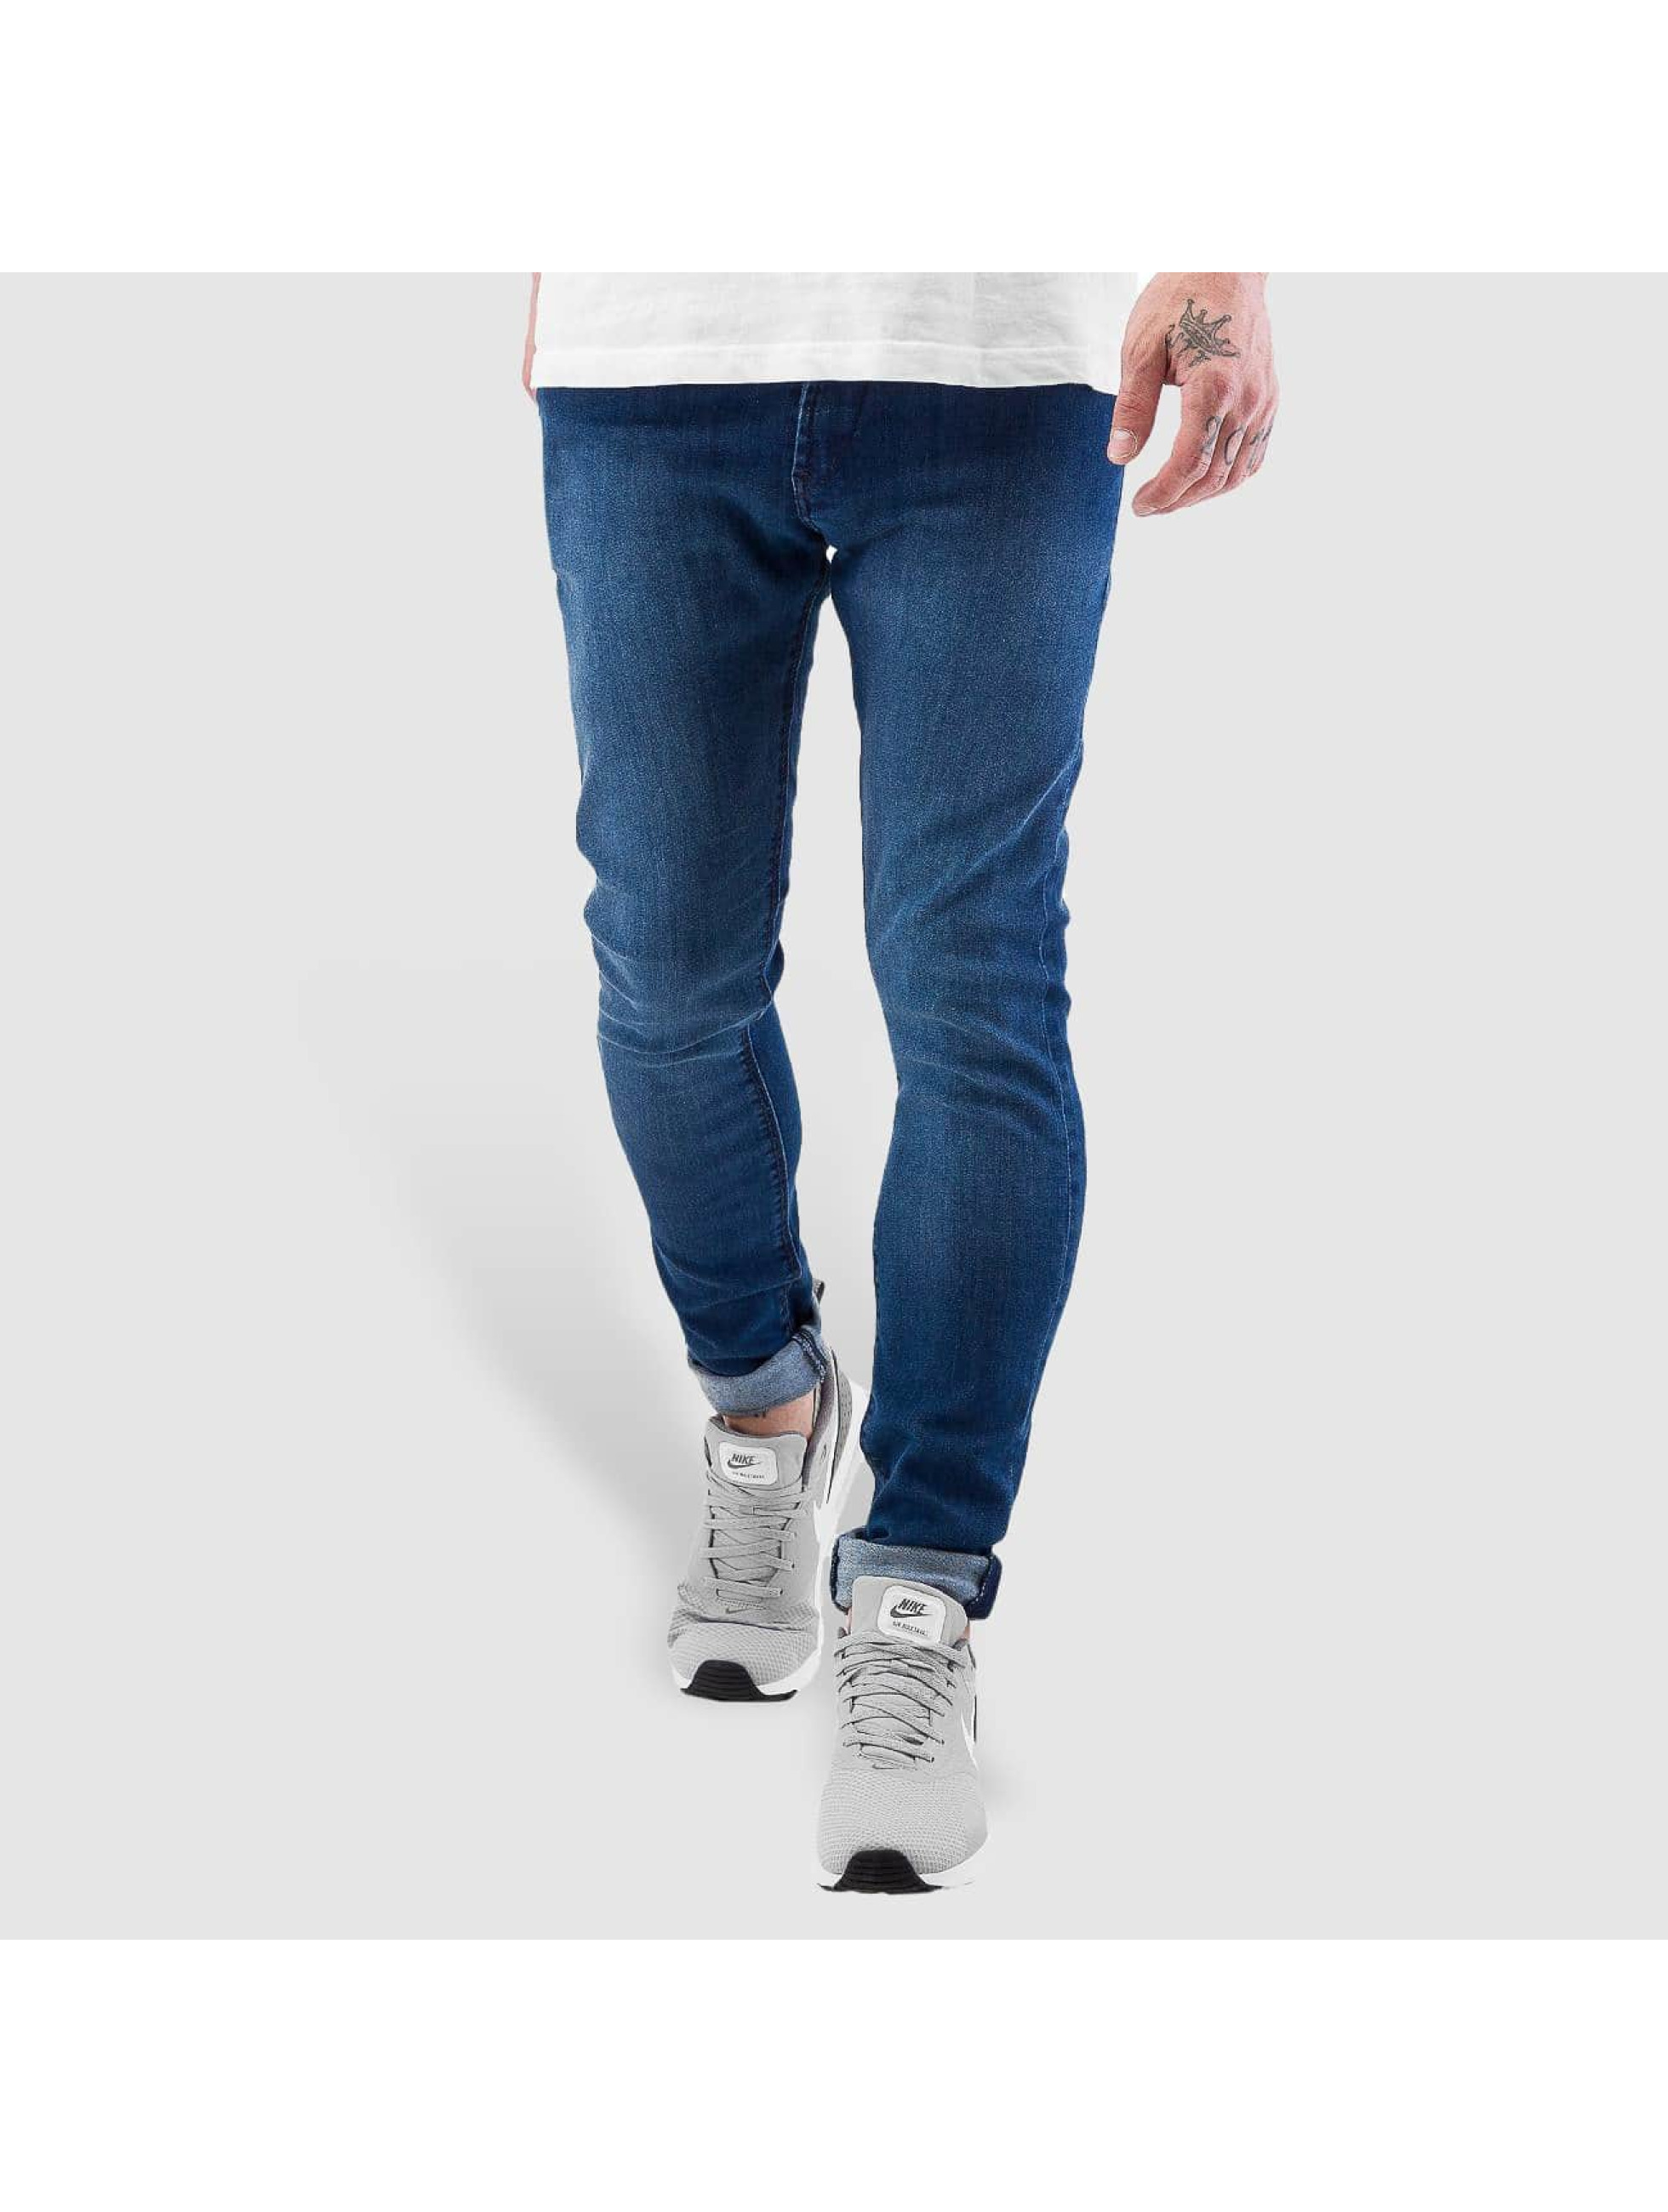 reell jeans herren skinny jeans radar stretch super slim fit in blau 104198. Black Bedroom Furniture Sets. Home Design Ideas